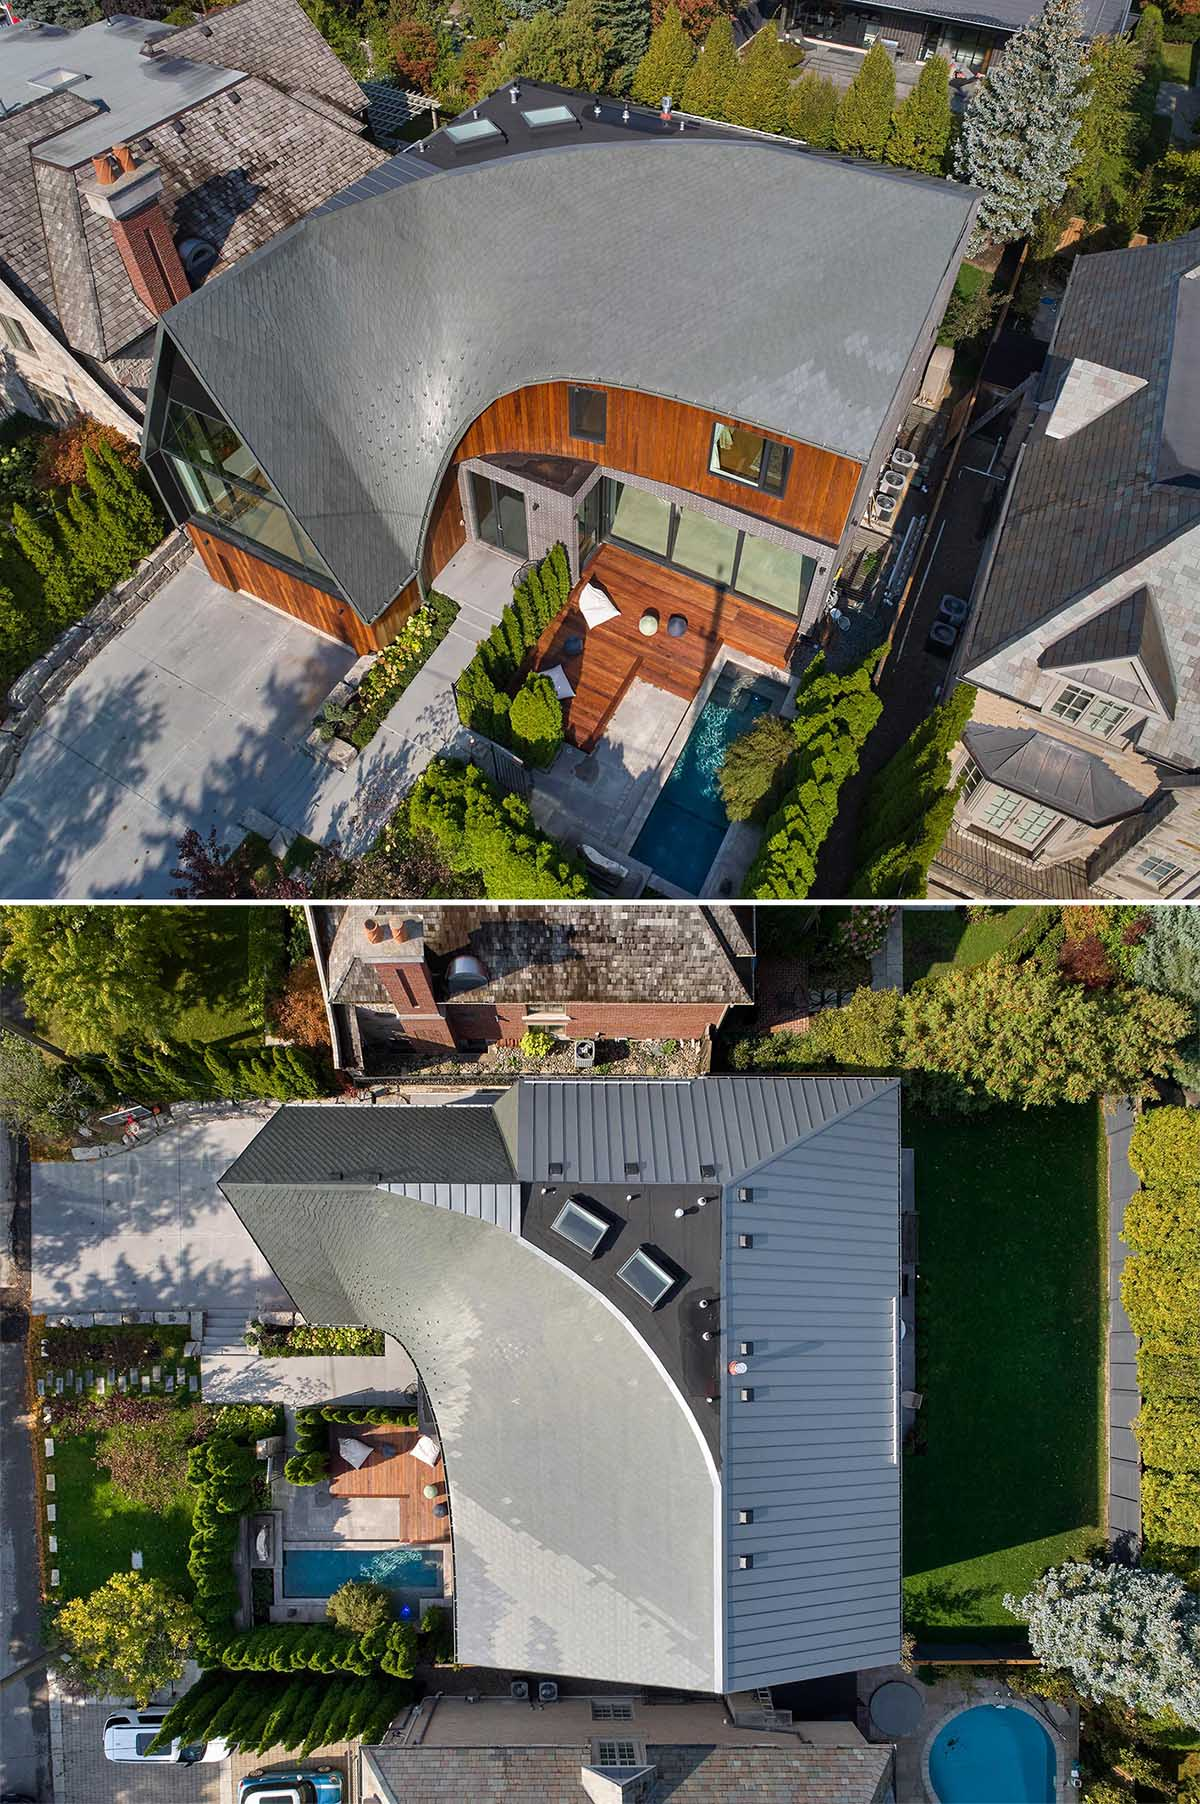 The bird's-eye-view shows the curved roof of this modern home.